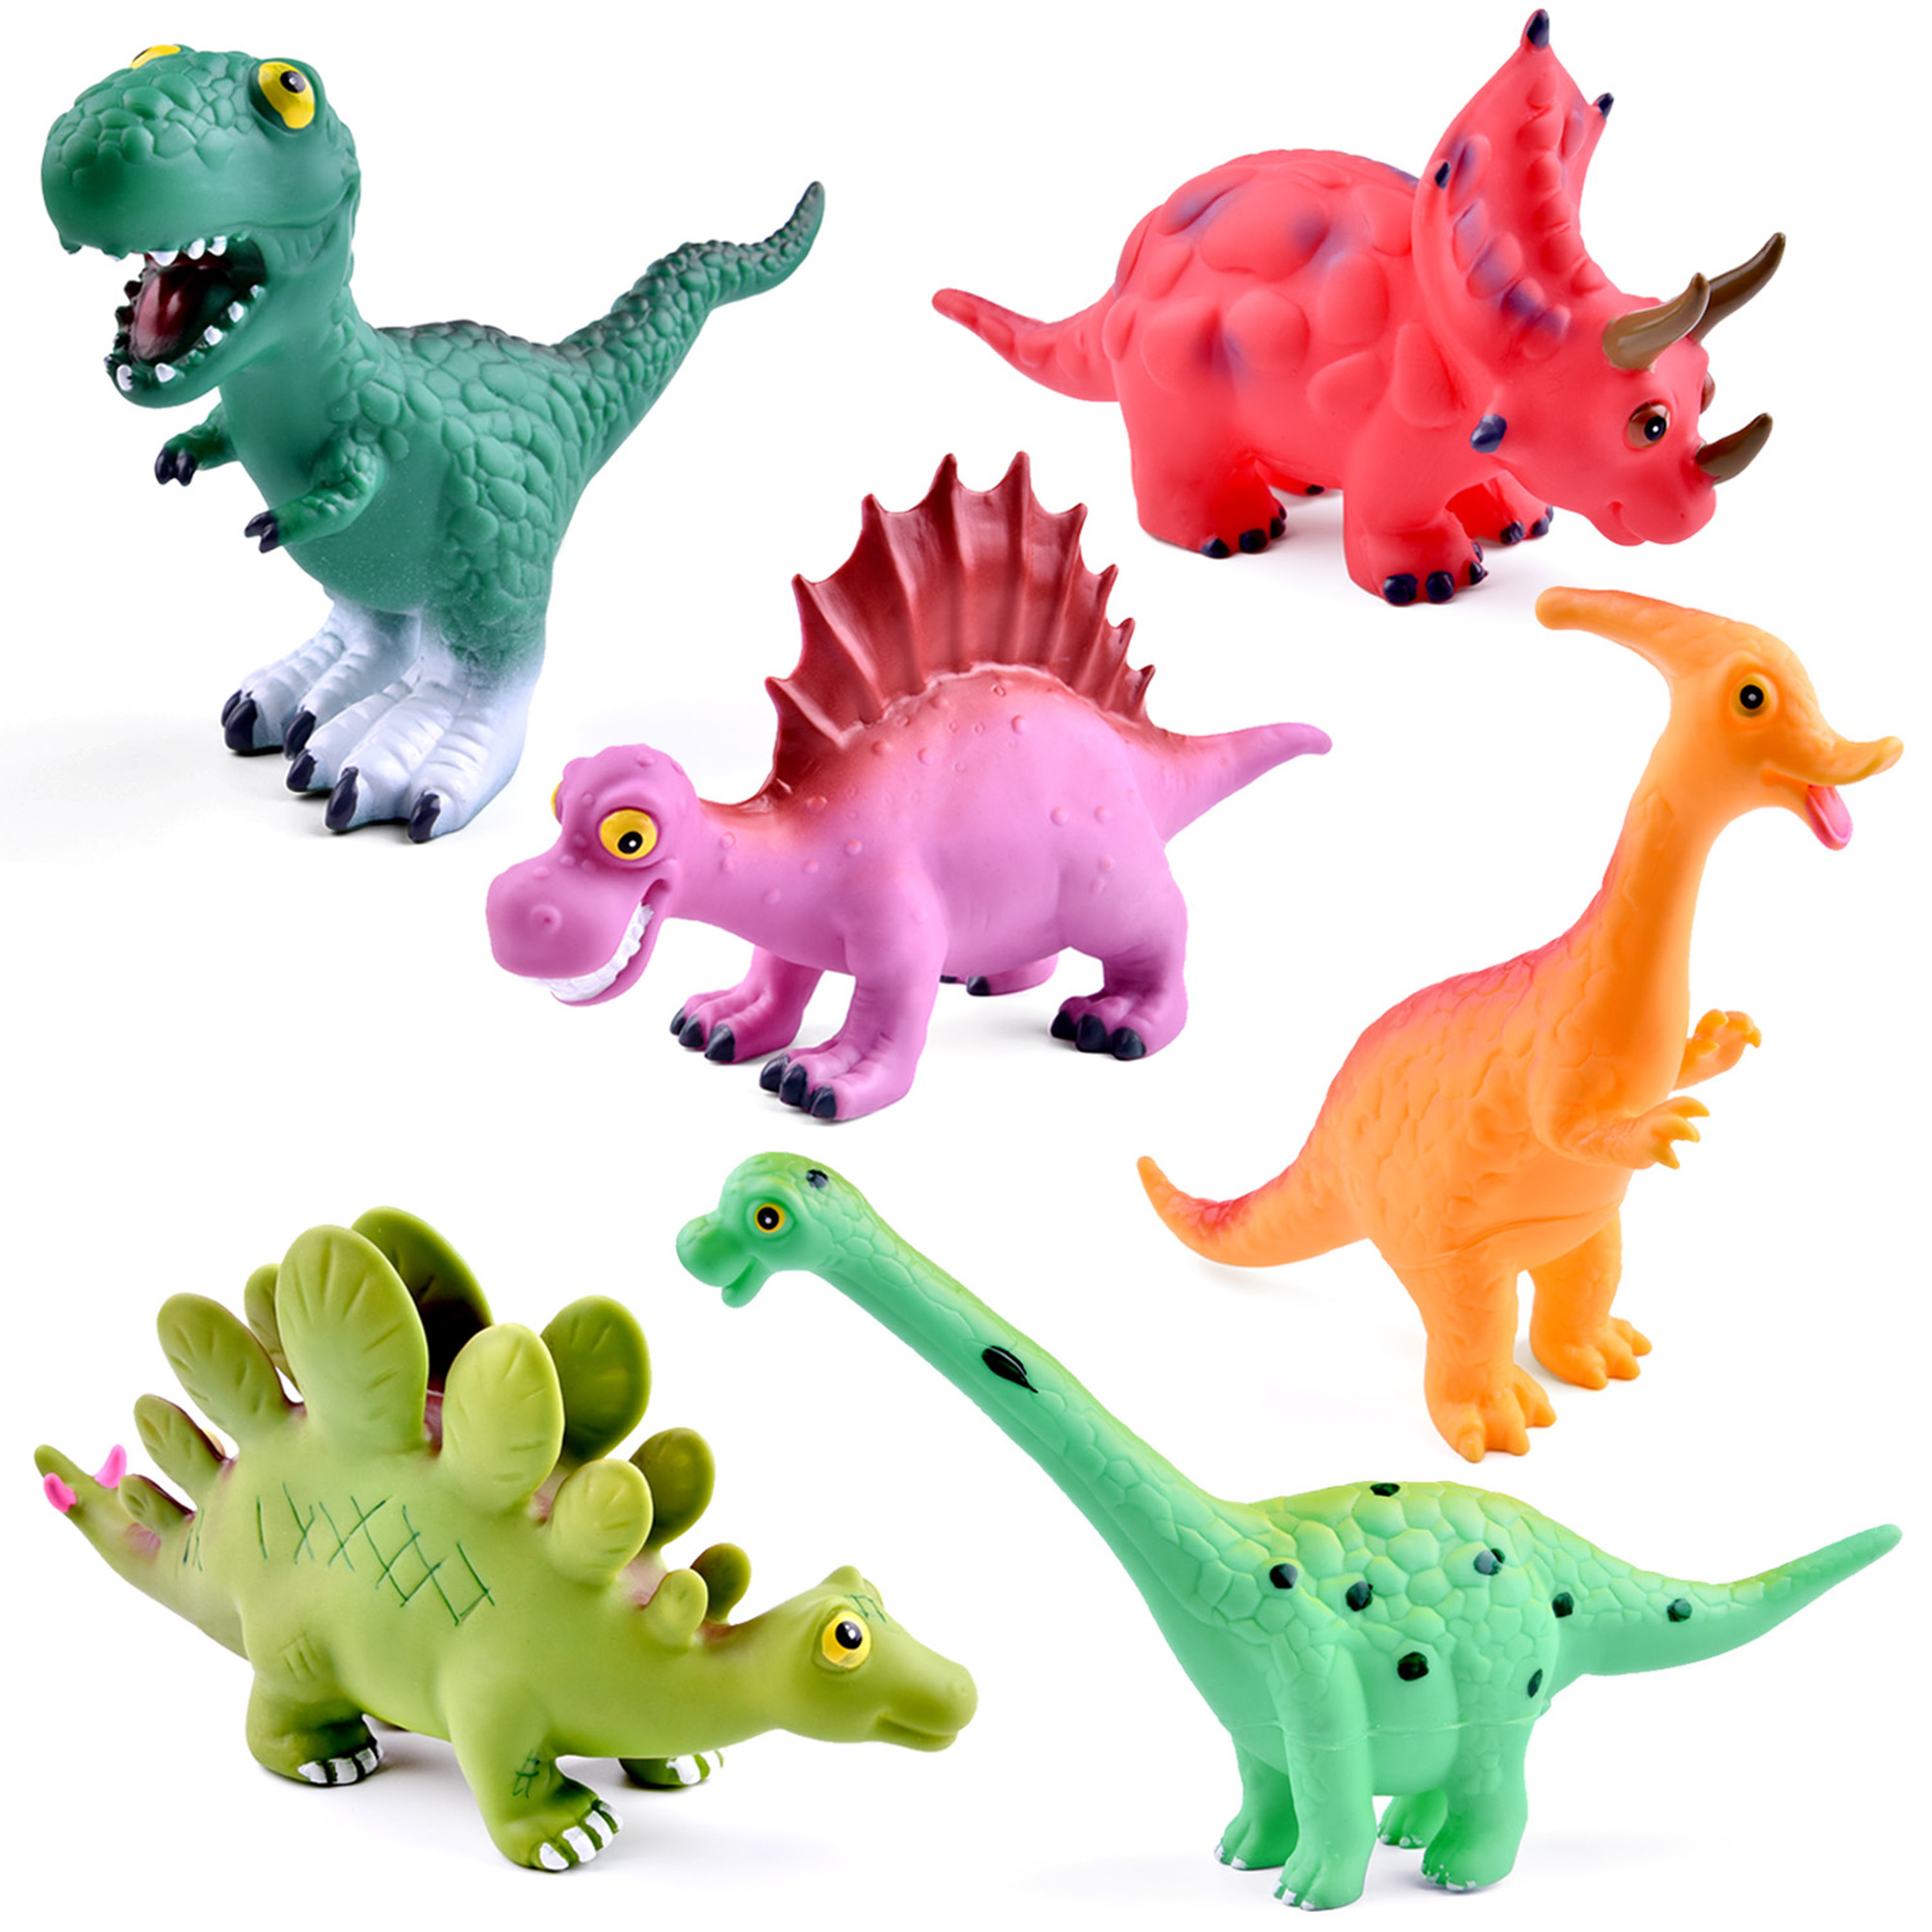 6 PCs Bath Rubber Dinosaur Toys Baby and Children Bath Toys in Assorted Pool Water Squirts Toy F-197 by Fun Little Toys